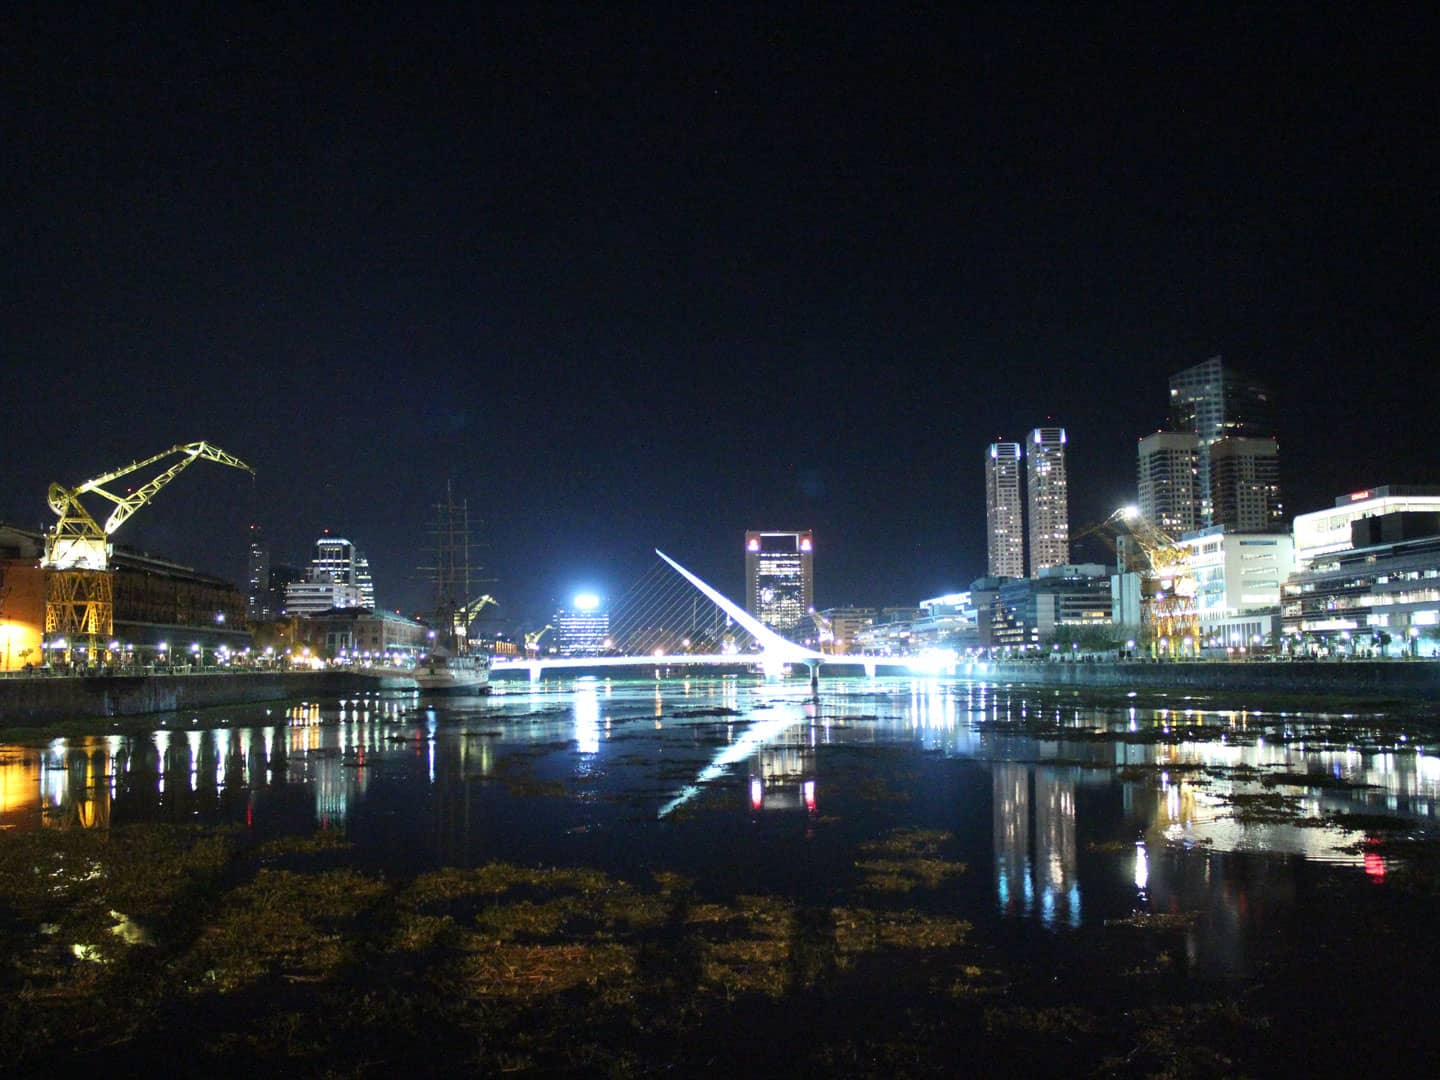 Puerto Madero night view